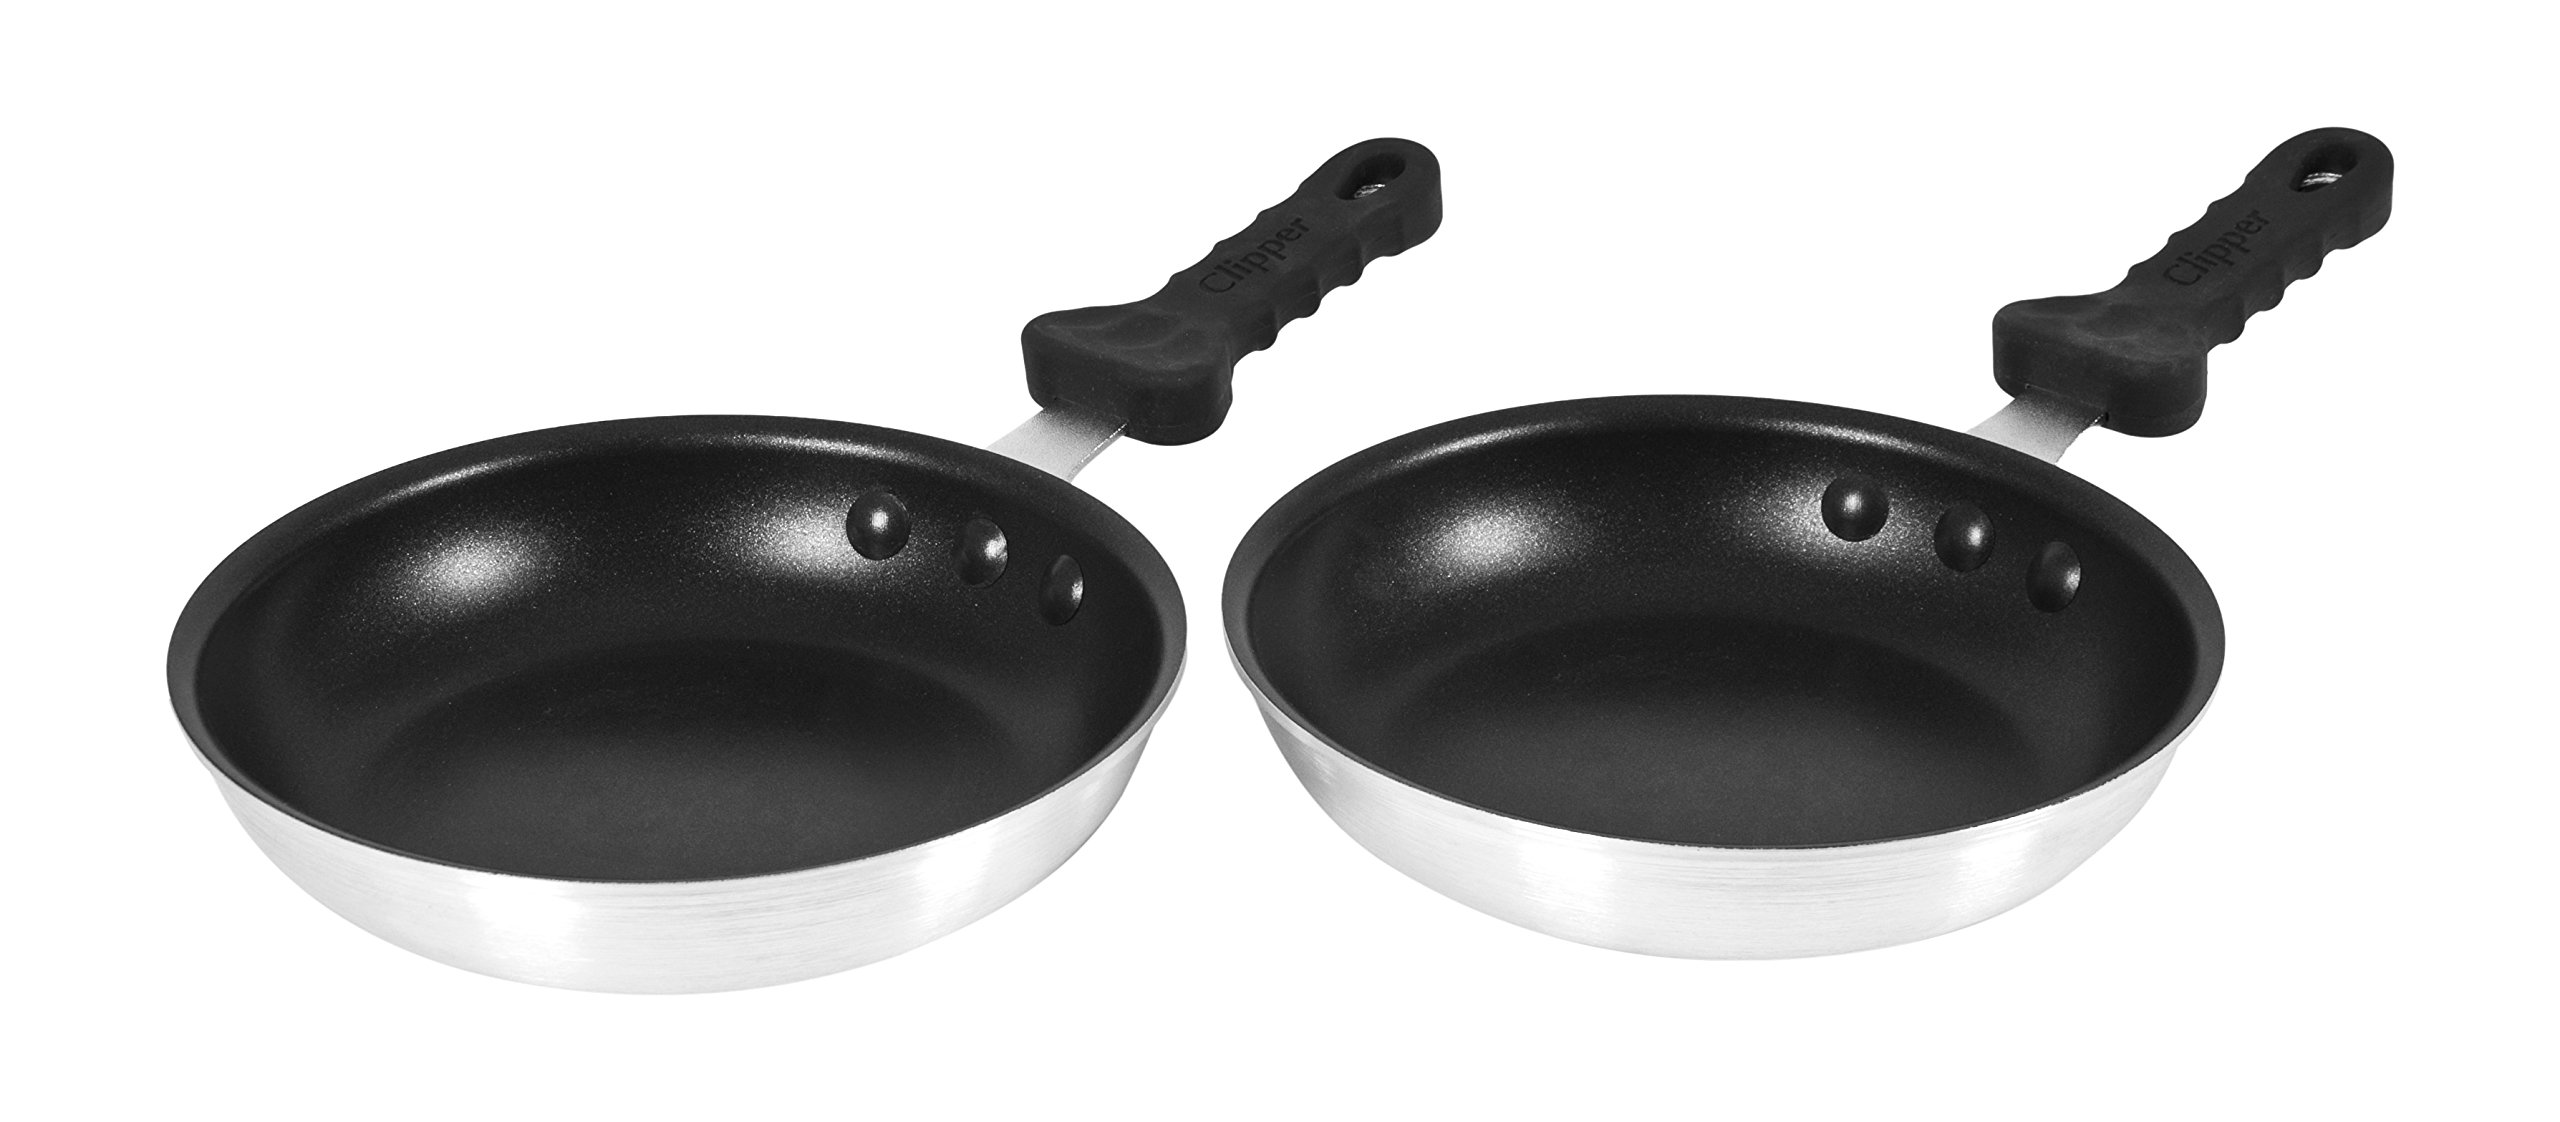 2 pack - 8 inch Commercial Non-Stick Fry Pans w/Ergo Silicone Grip